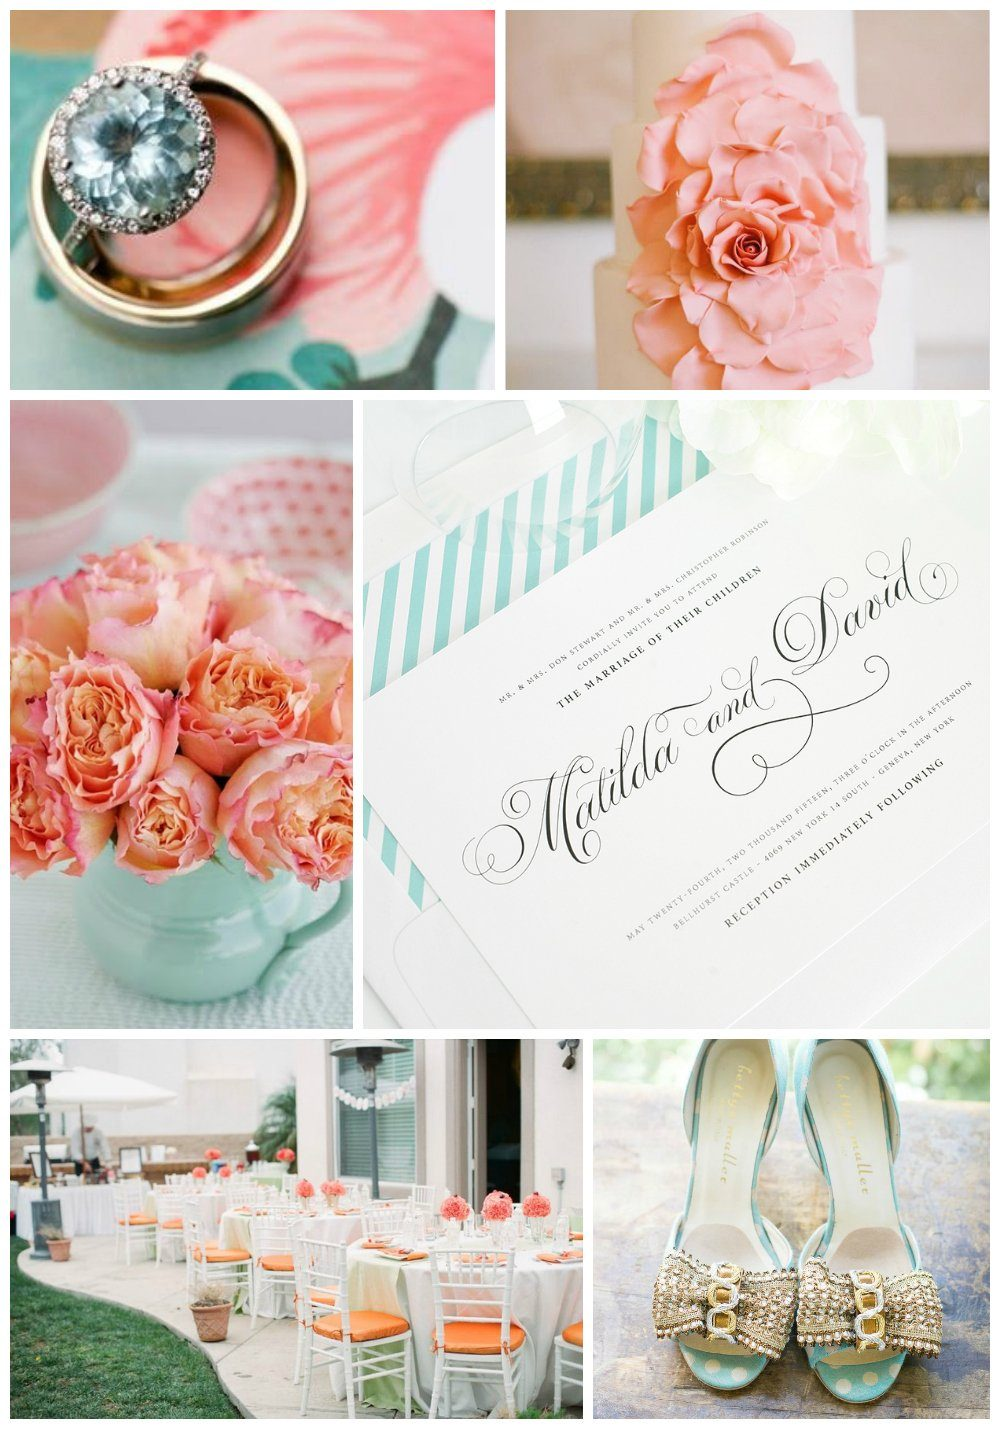 Peach, aqua and gold wedding inspiration and details